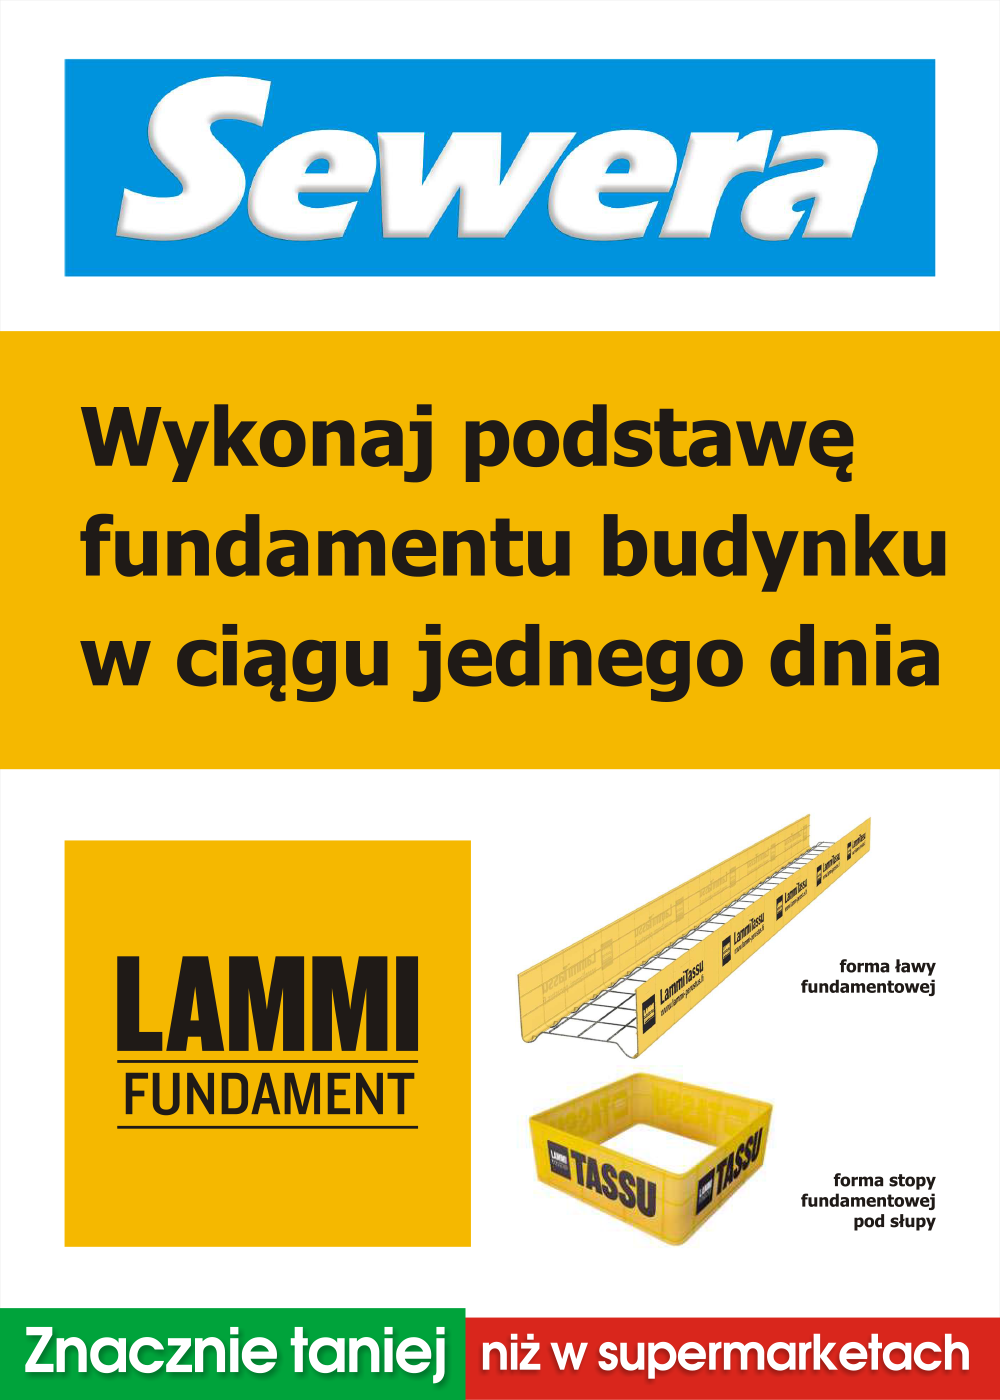 LAMMI FUNDAMENT